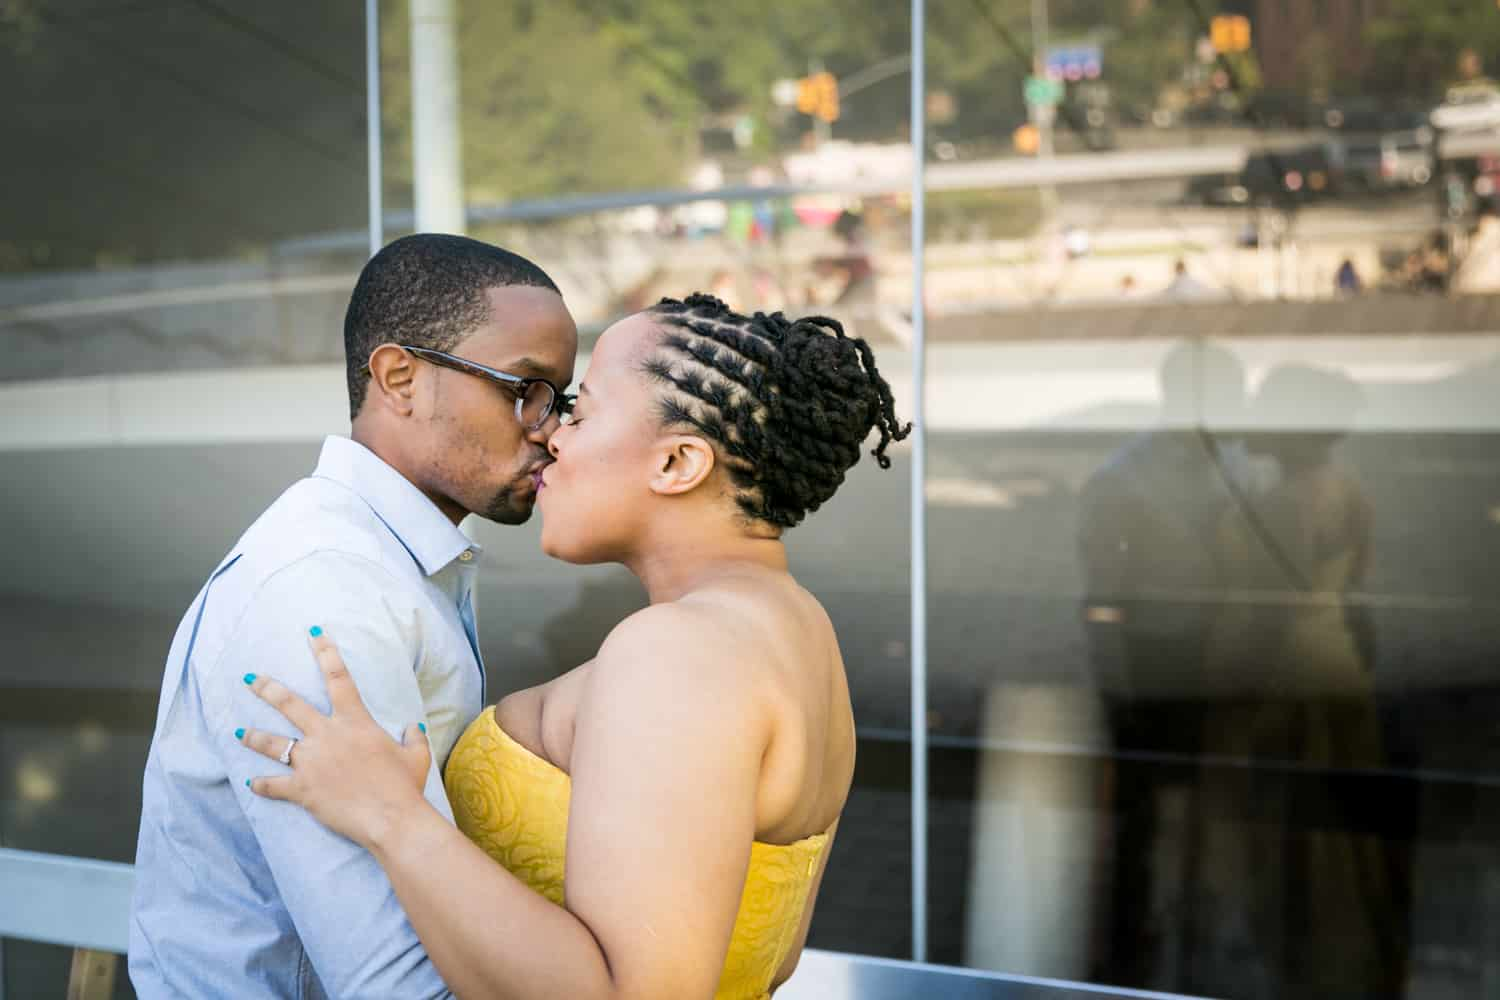 Couple kissing in front of glass wall with reflection